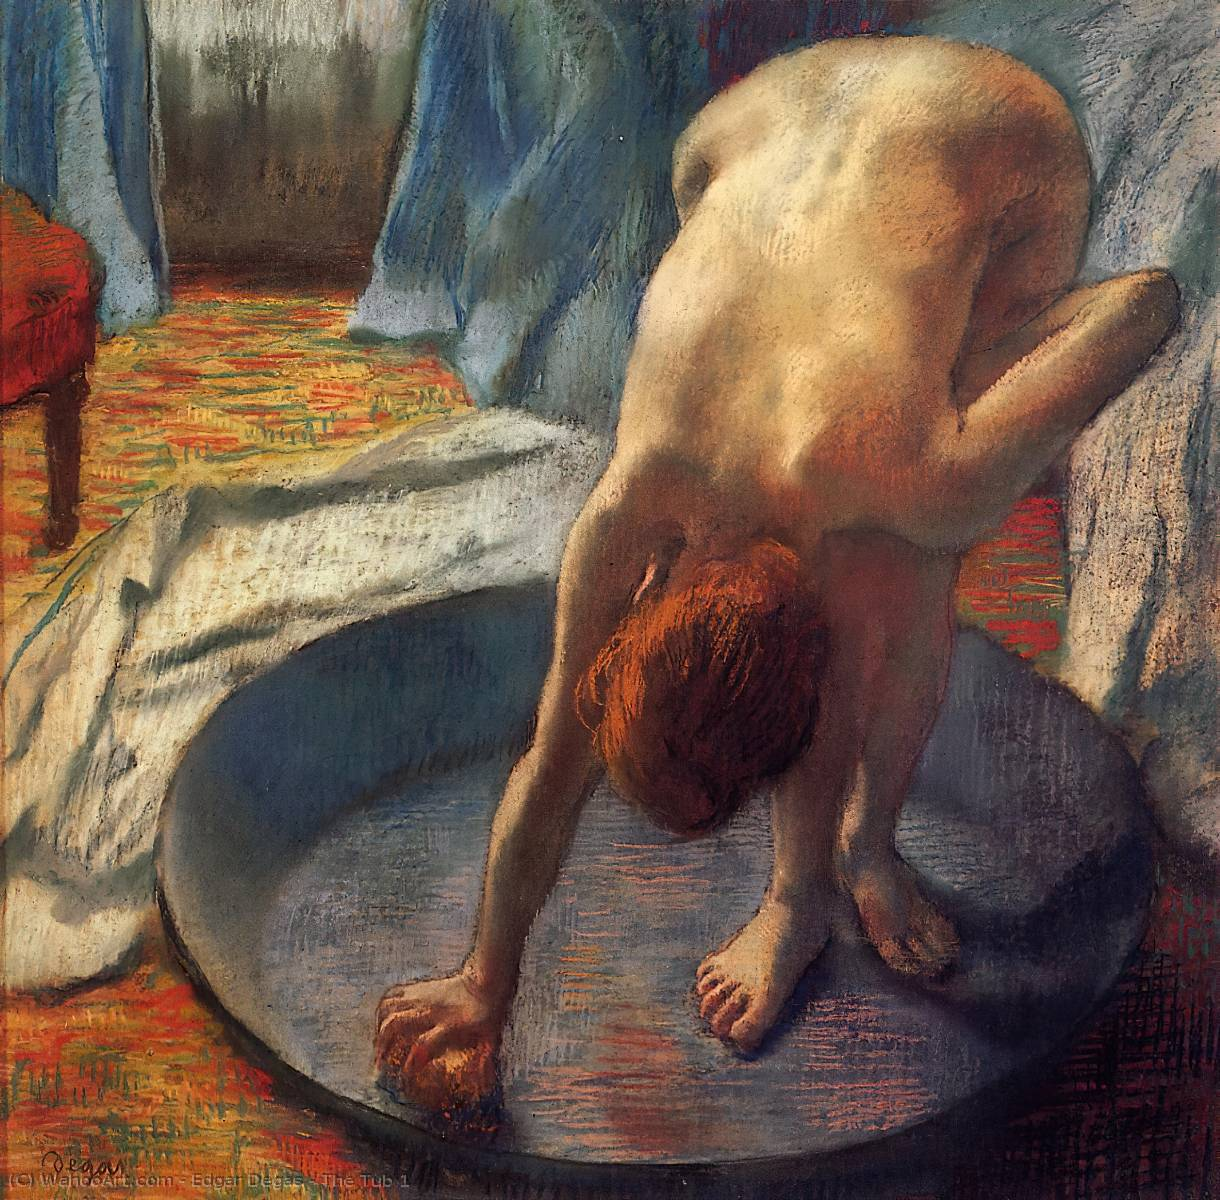 famous painting Le Tub 1   of Edgar Degas